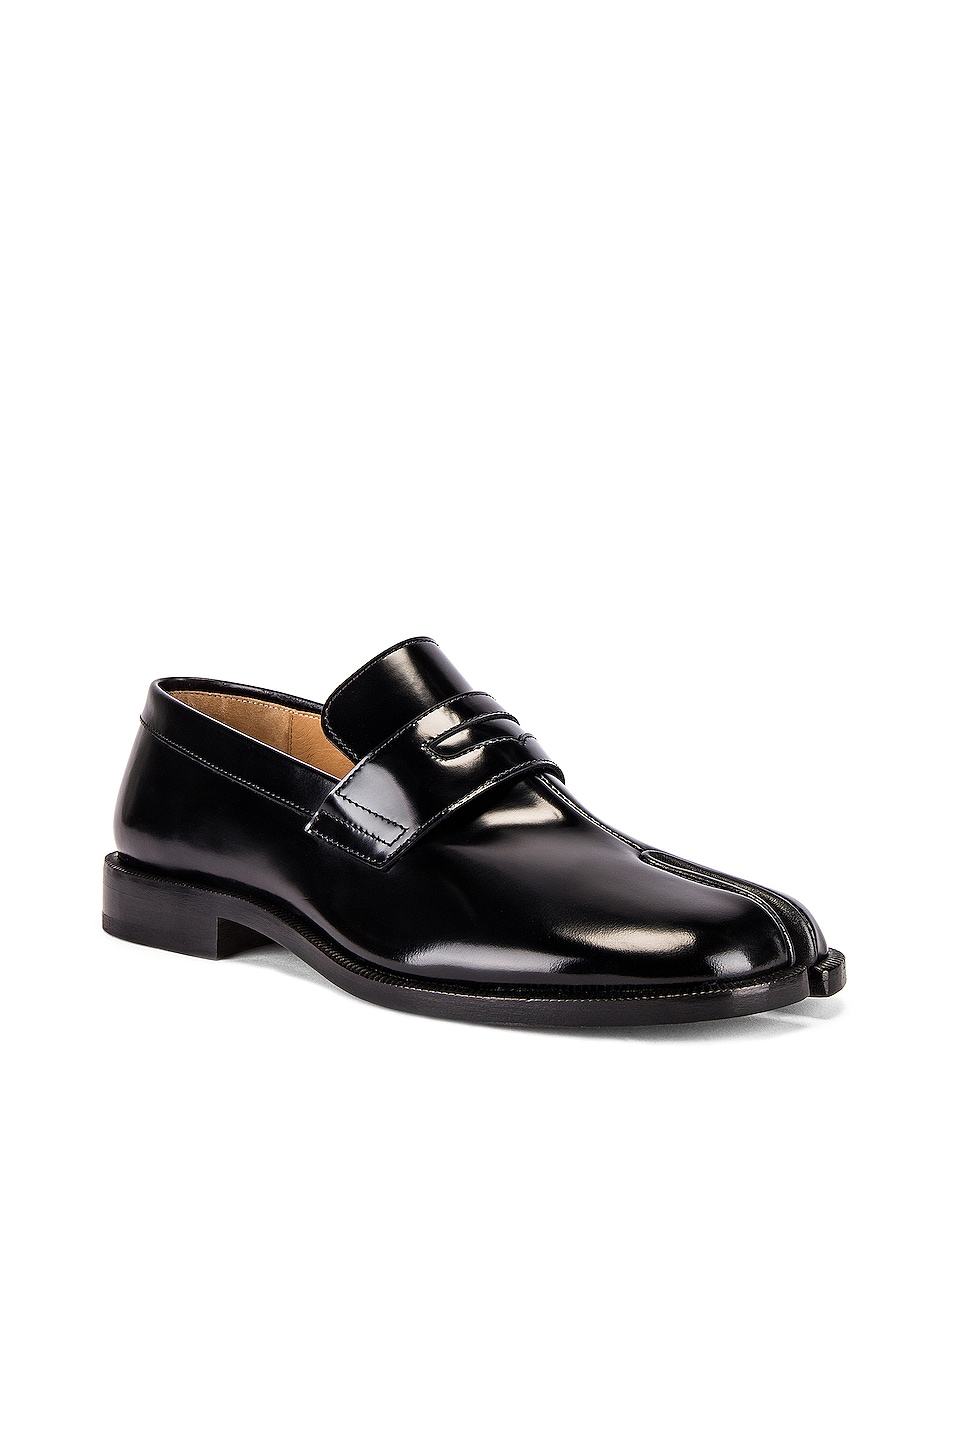 Image 1 of Maison Margiela Tabi Advocate Loafer in Black